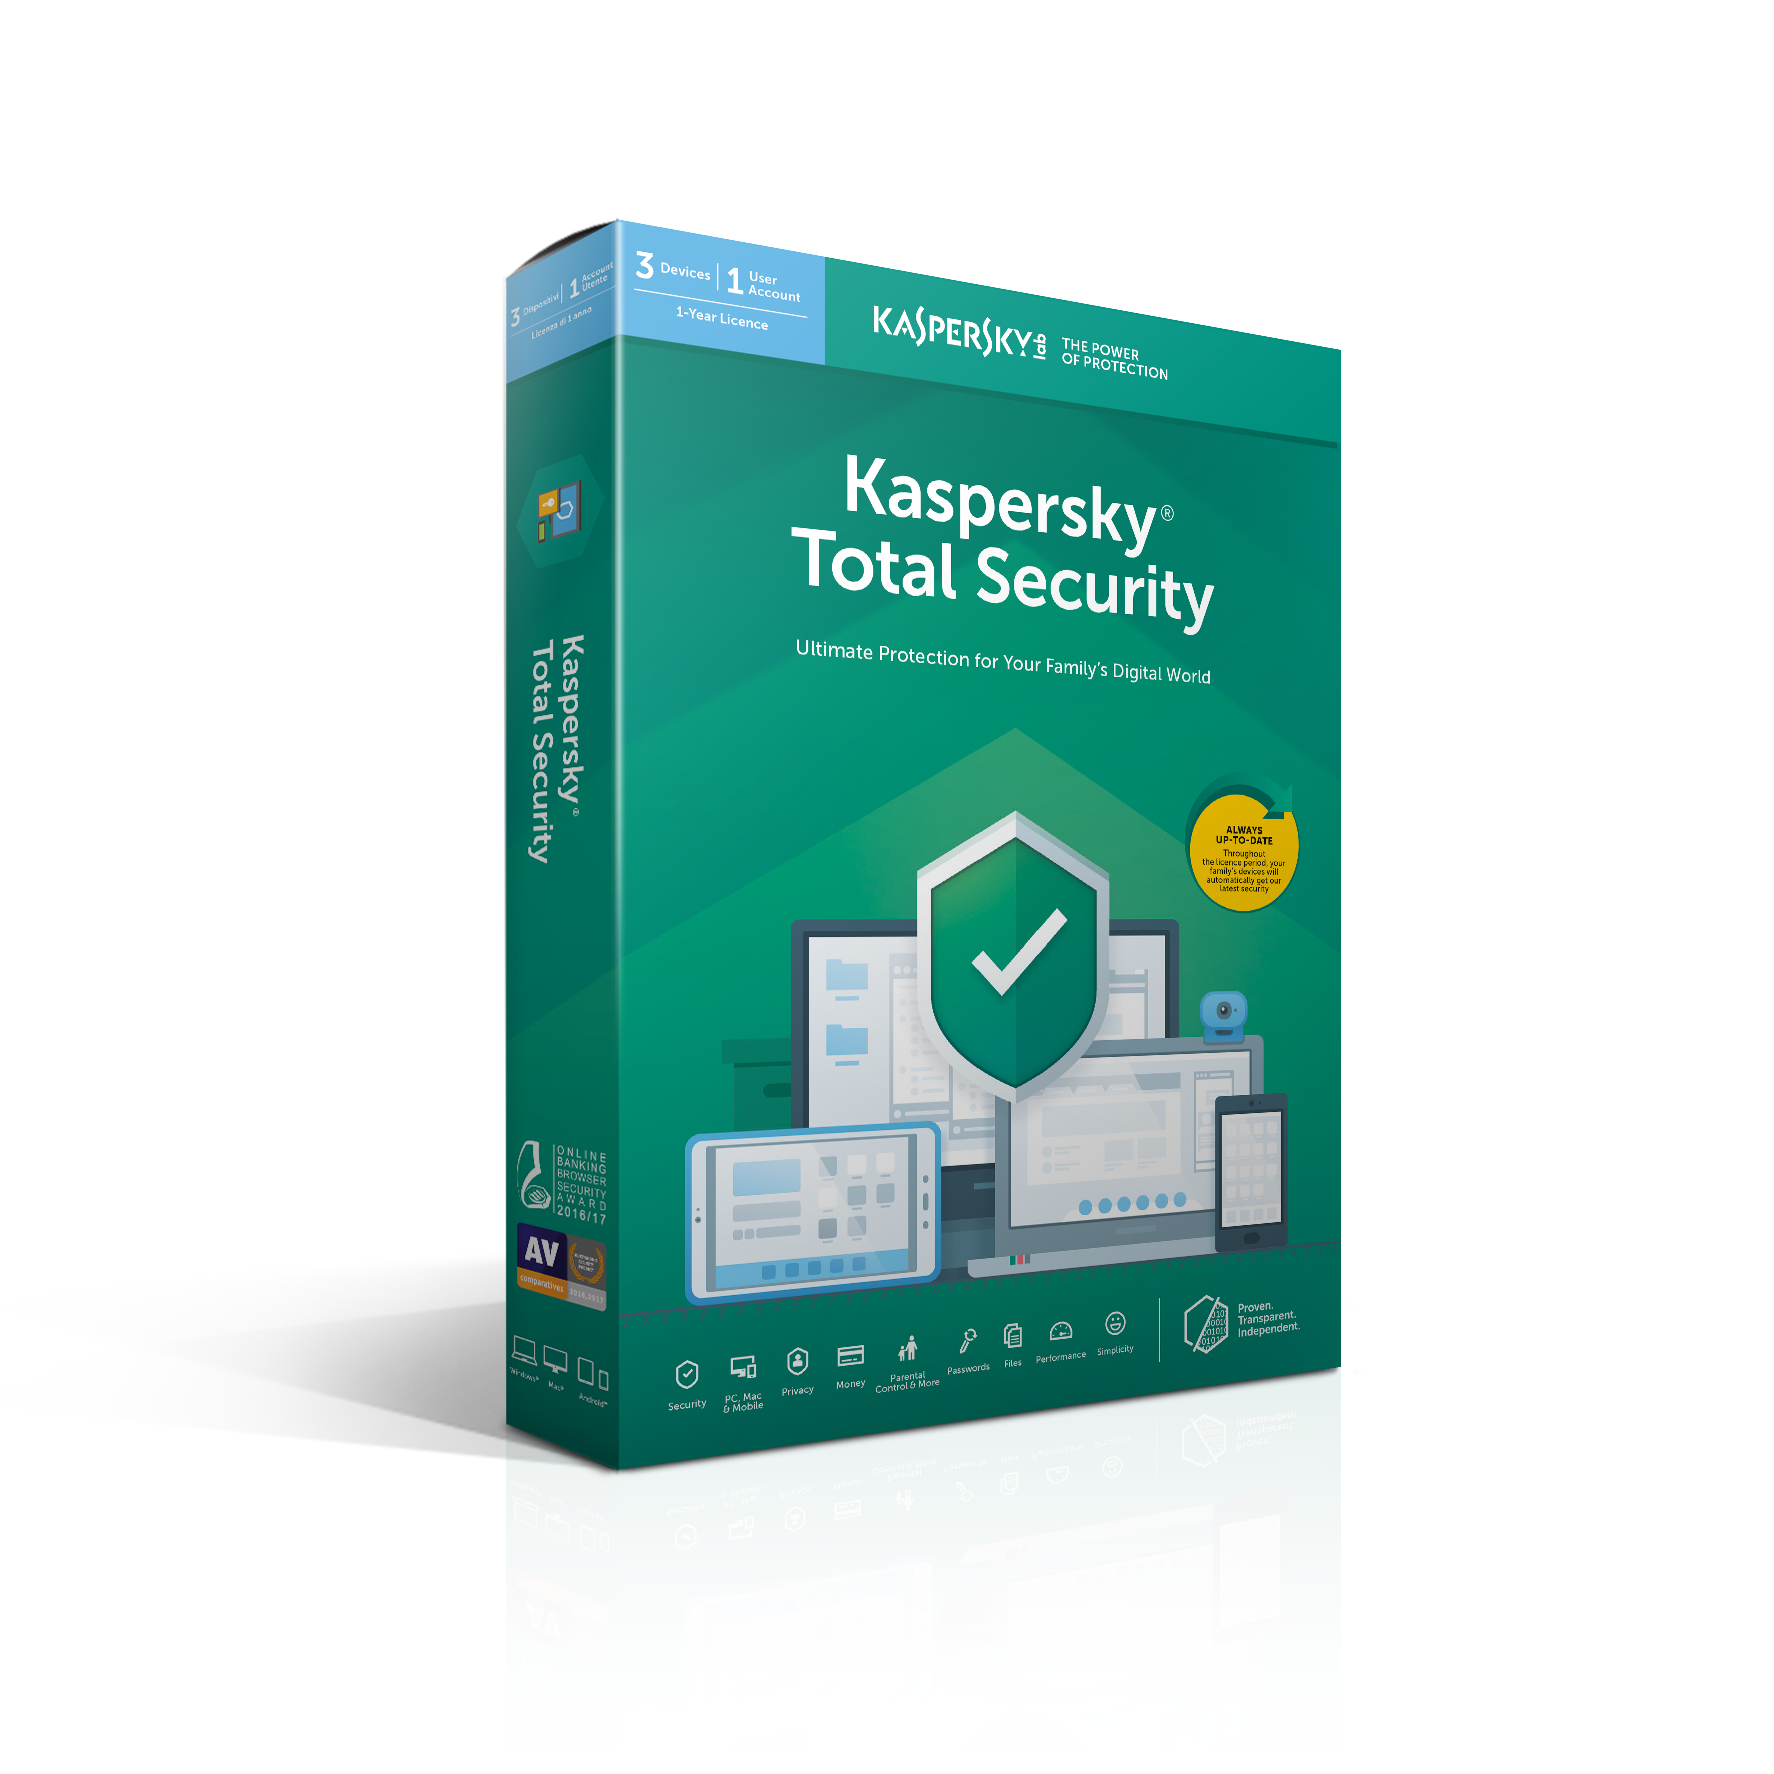 Kaspersky Lab Total Security 2019 Base license 3 licentie(s) 1 jaar Nederlands, Frans